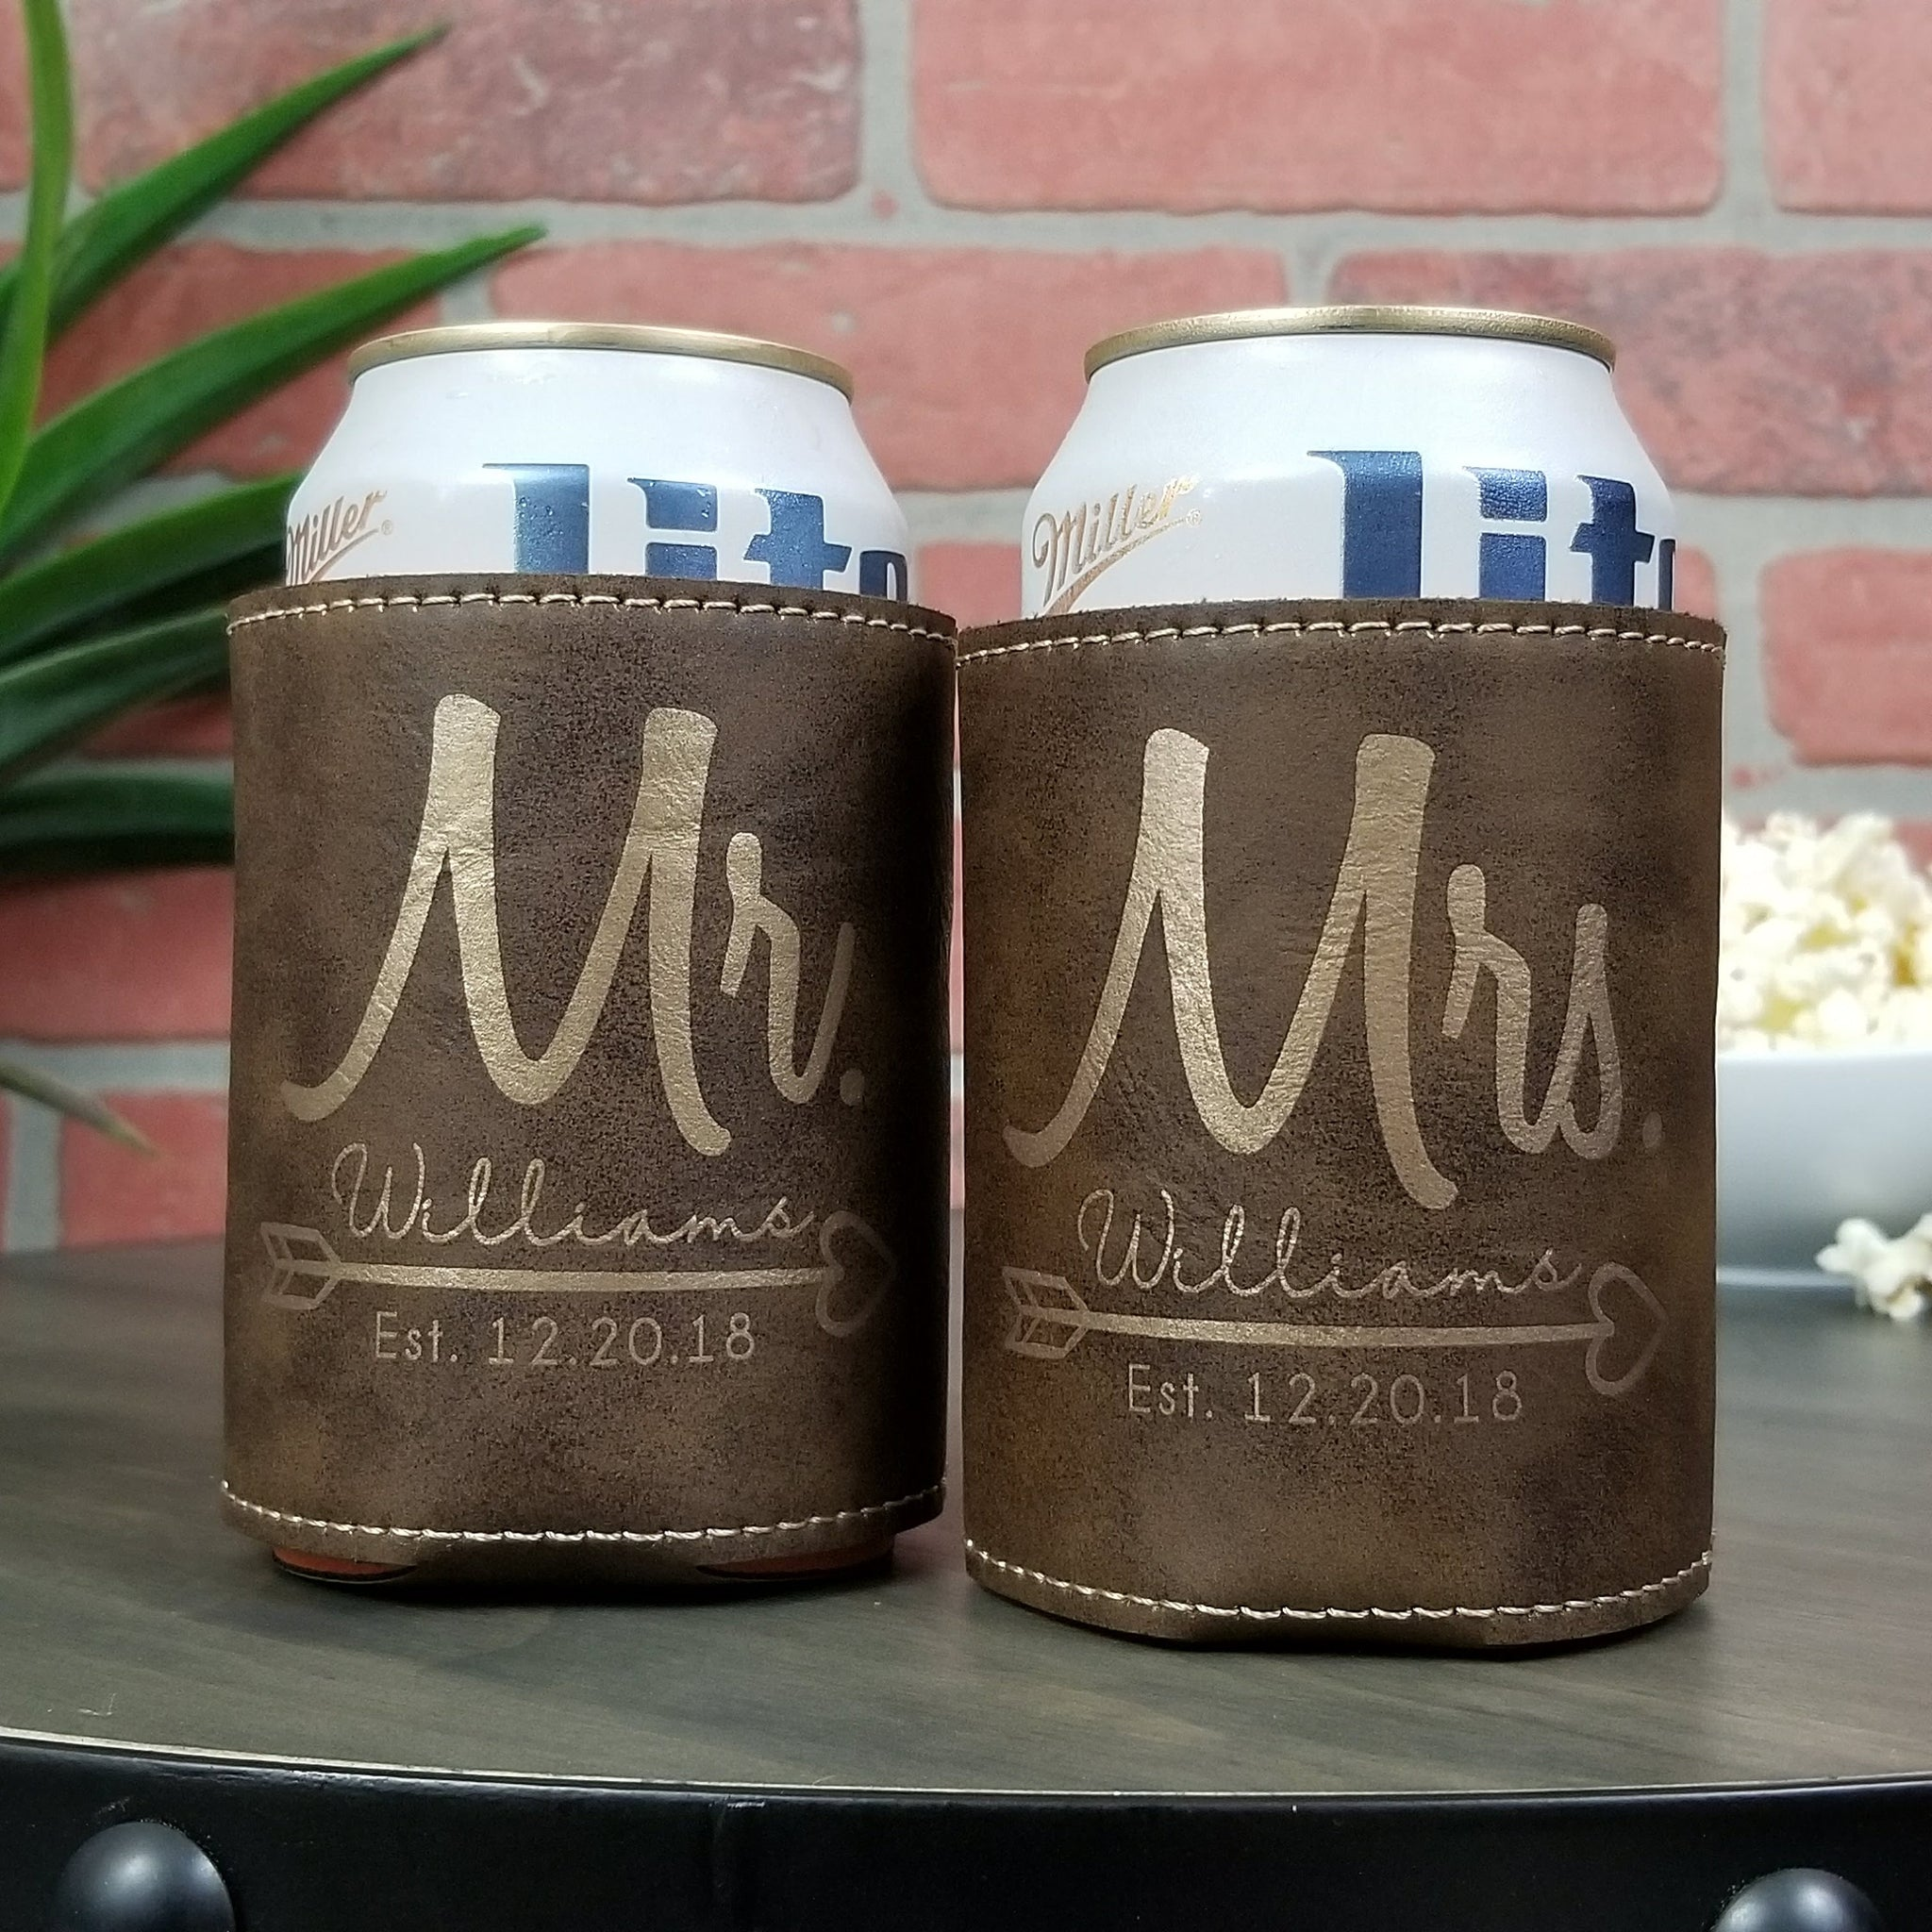 Customized Mr. and Mrs. Leather insulated beverage sleeve cozie wedding, anniversary